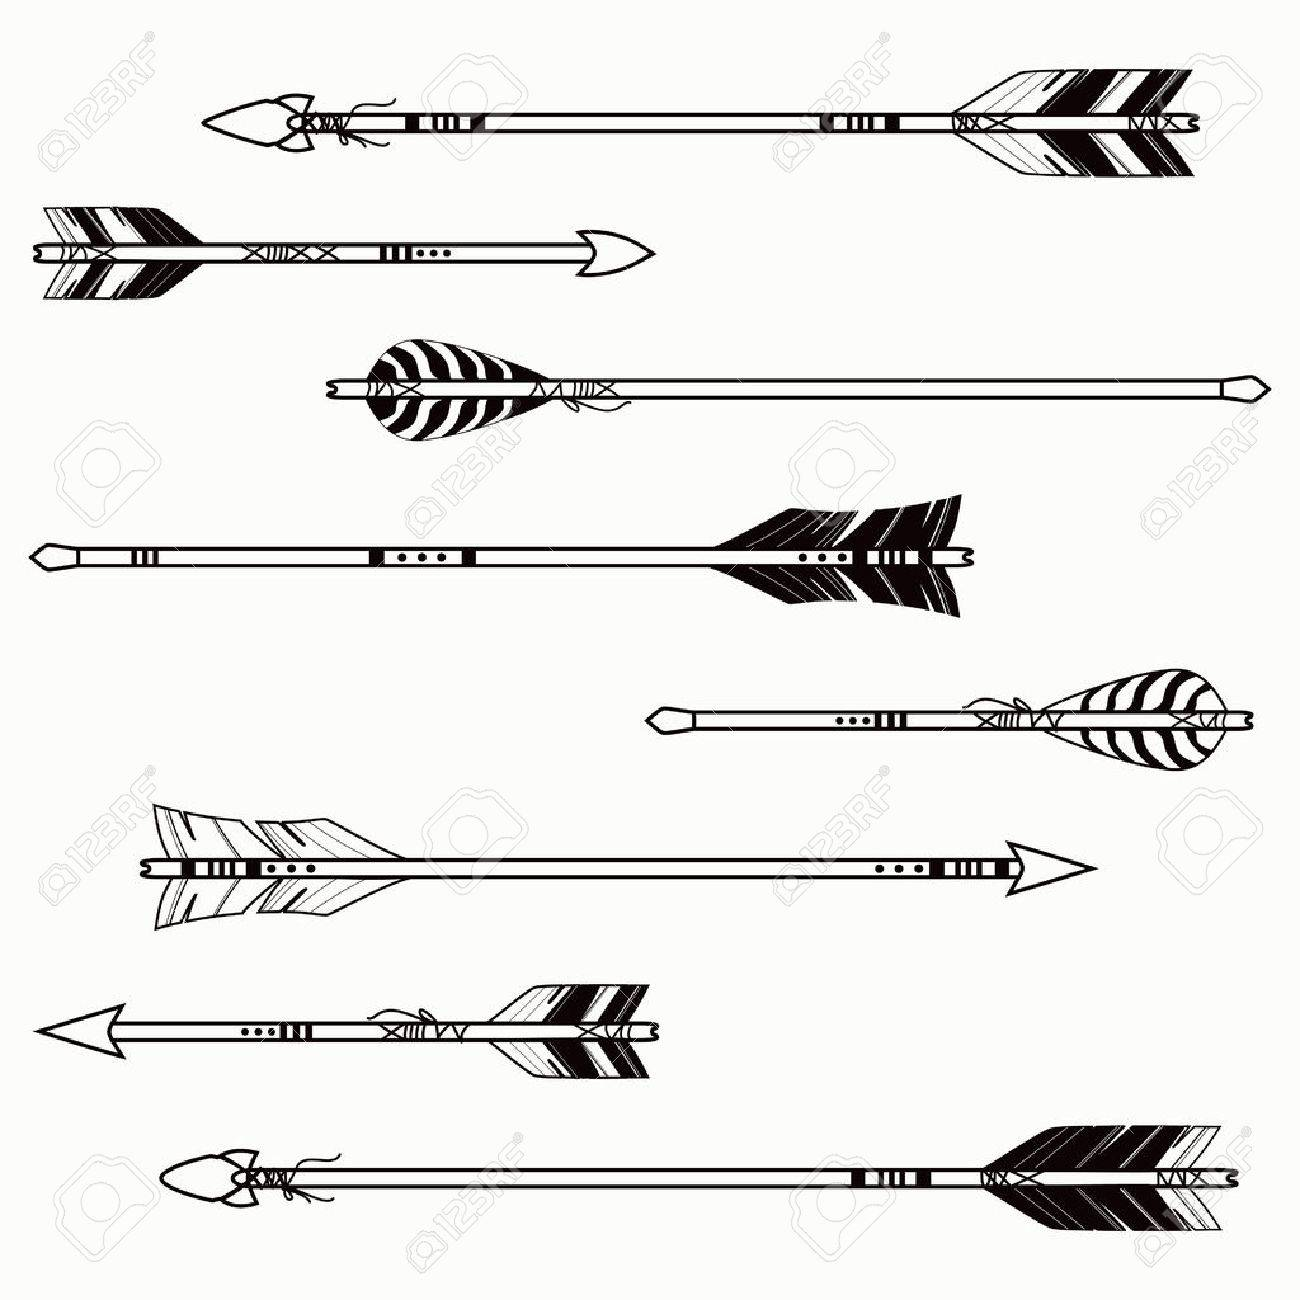 Native American Arrow Symbol Infovisual